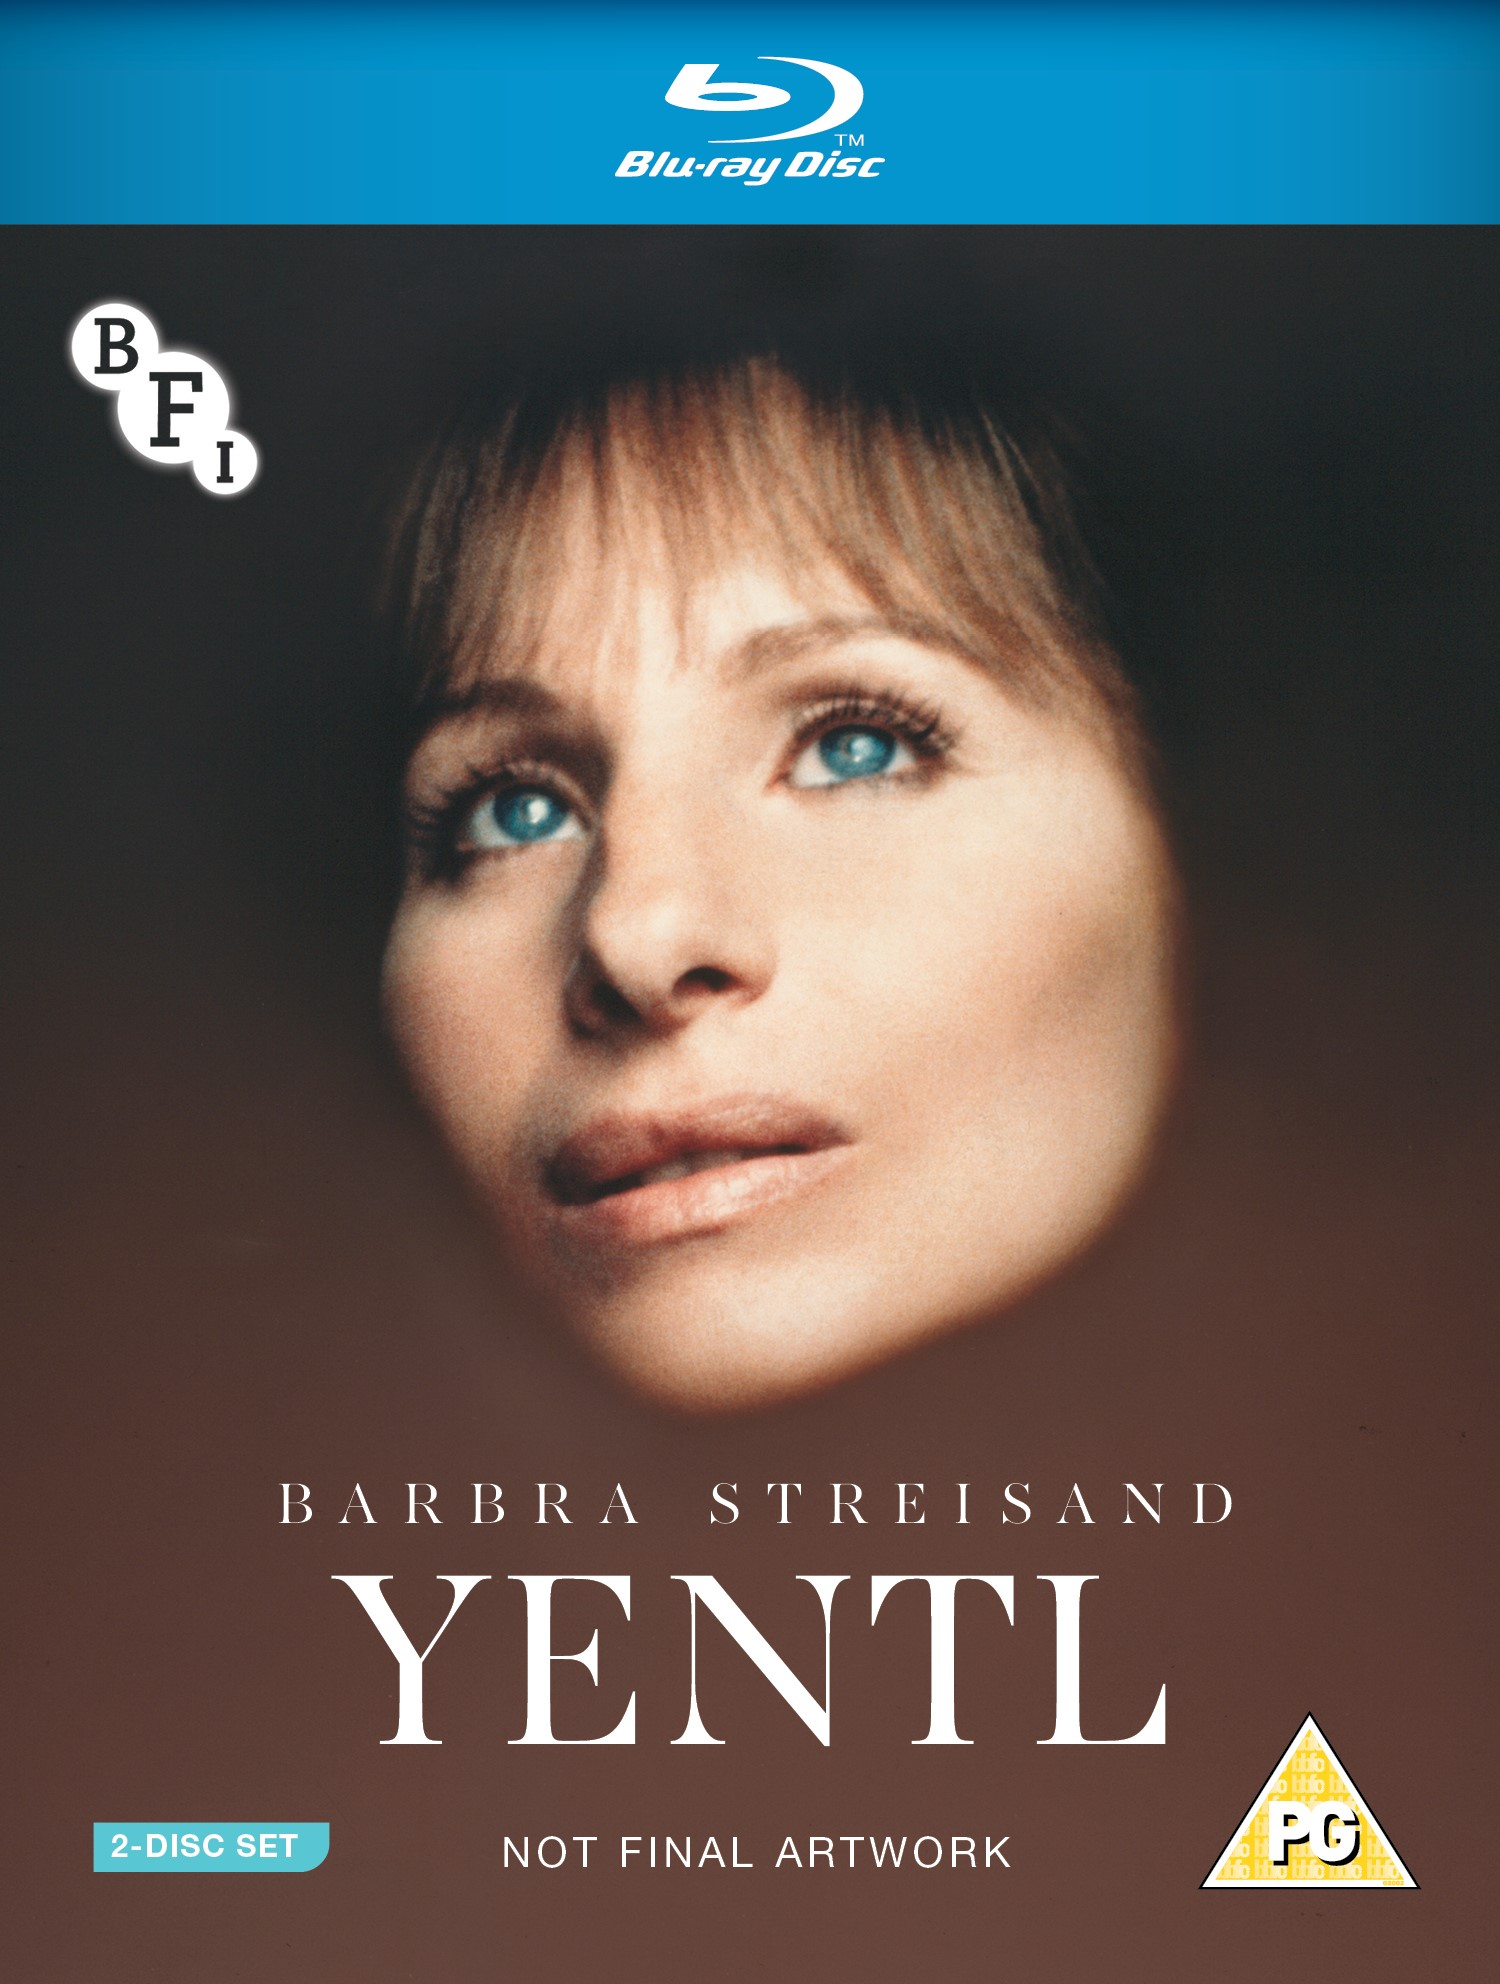 Buy PRE-ORDER Yentl (2-disc Blu-ray / DVD set)